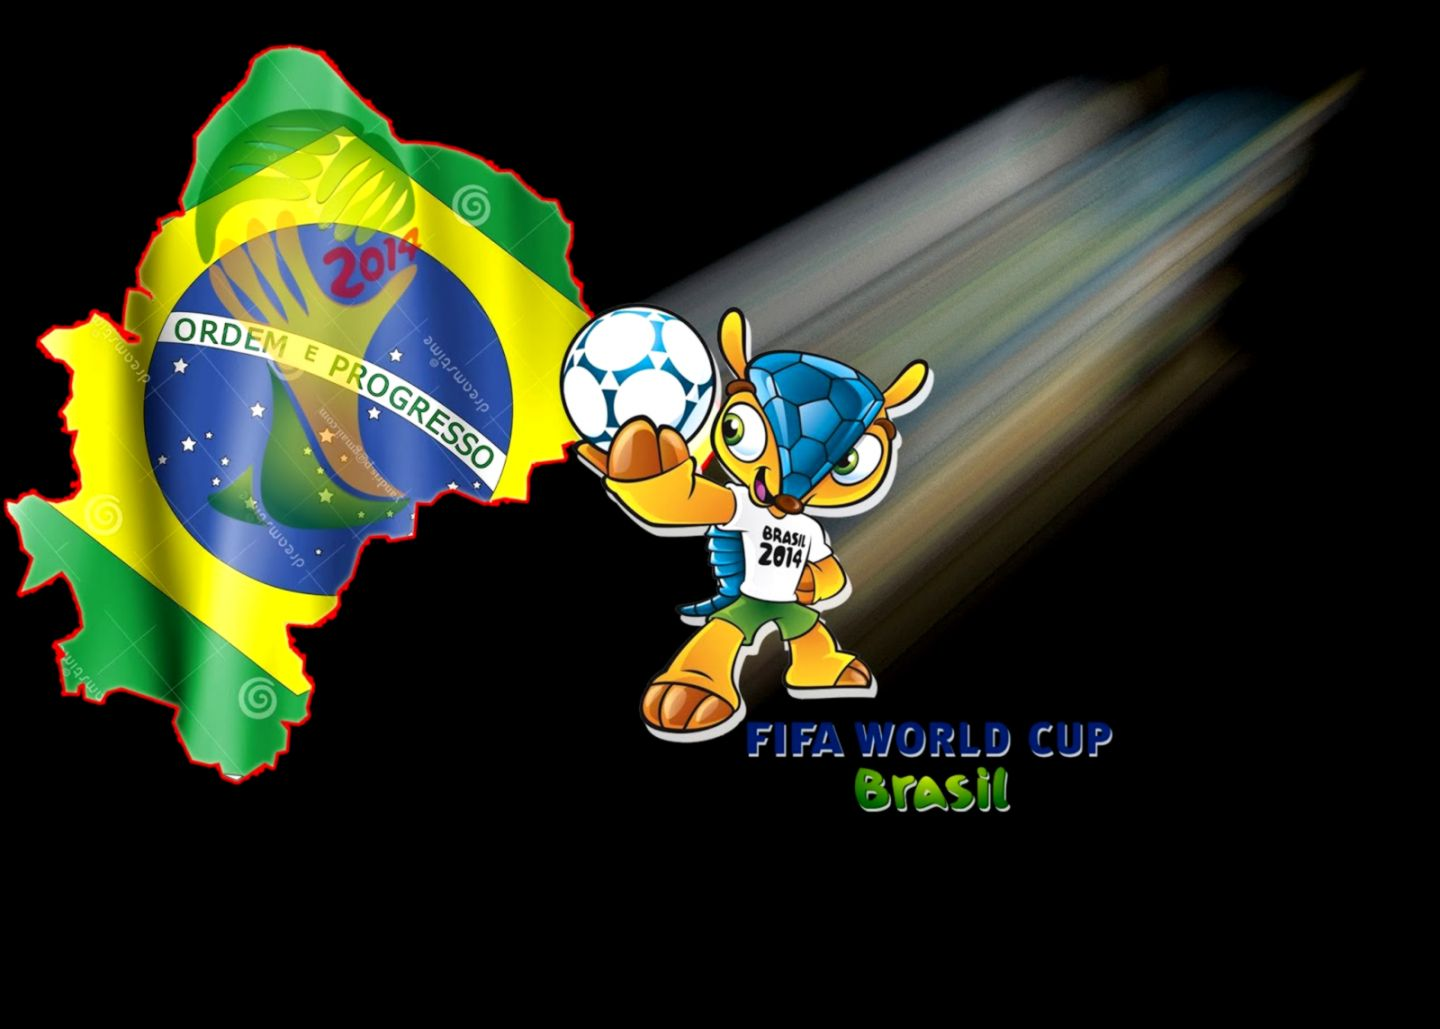 fifa world cup 2014 brazil wallpaper wallpapers quality